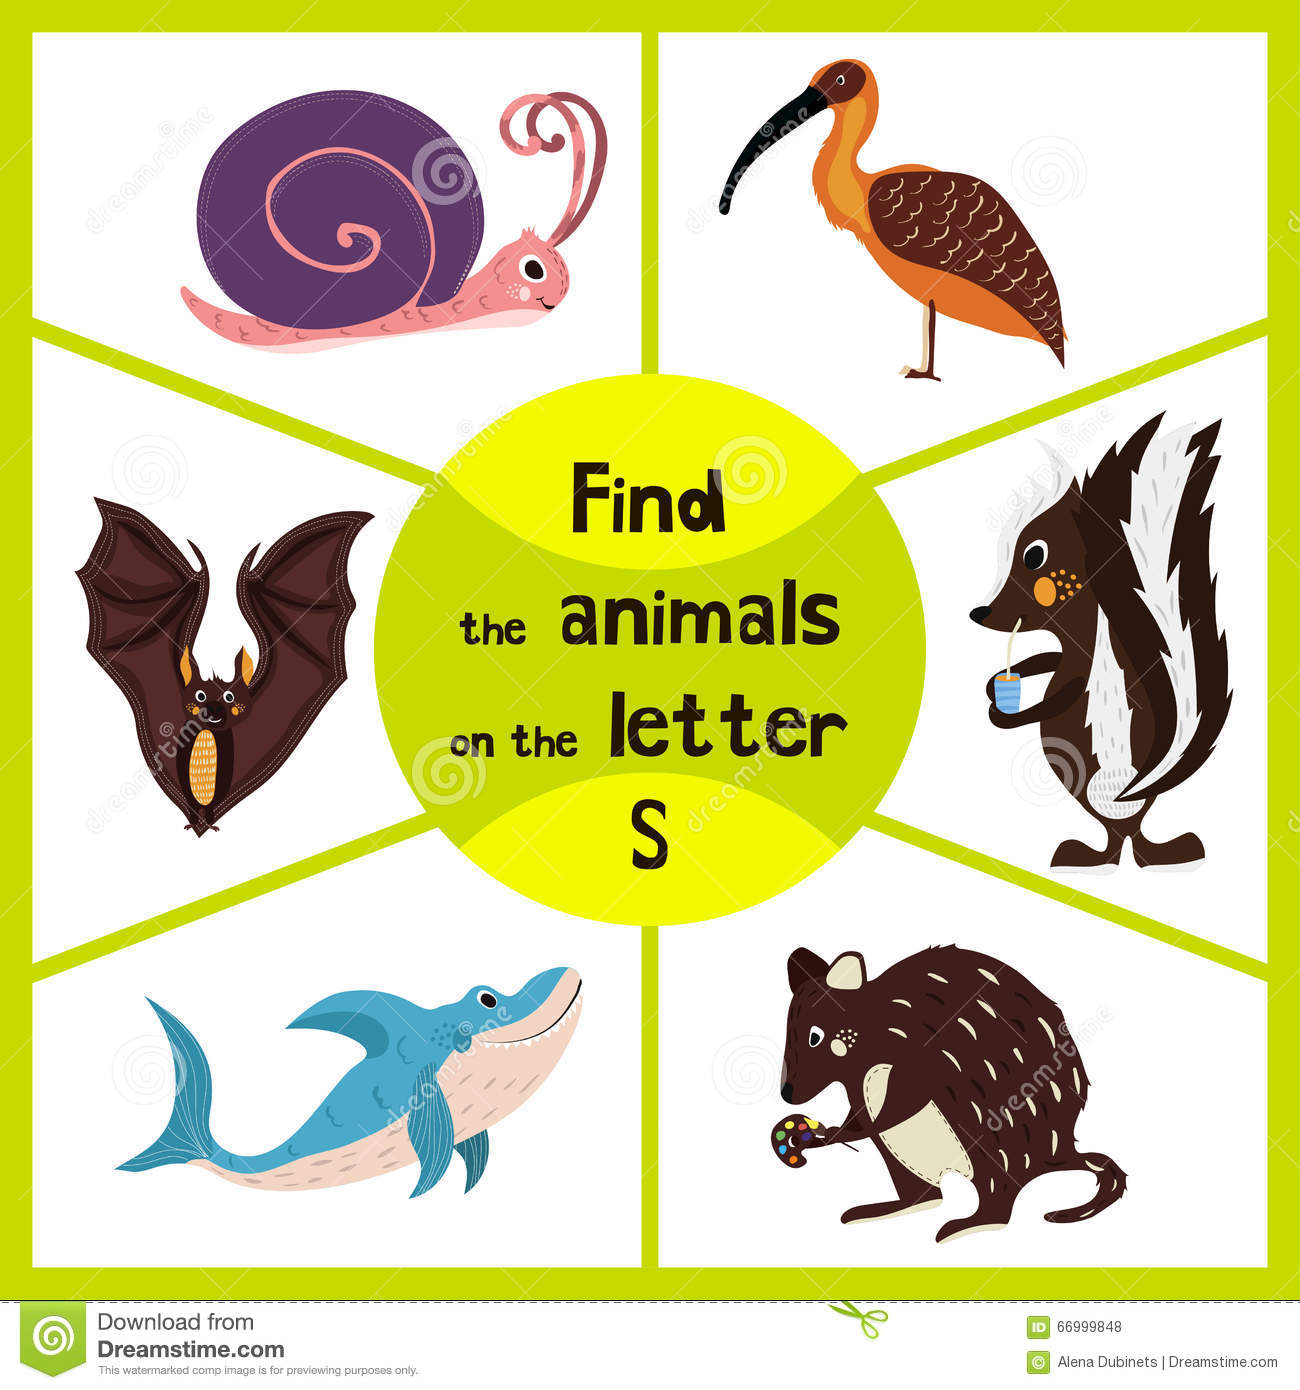 Funny Learning Maze Game, Find All 3 Cute Wild Animals With The